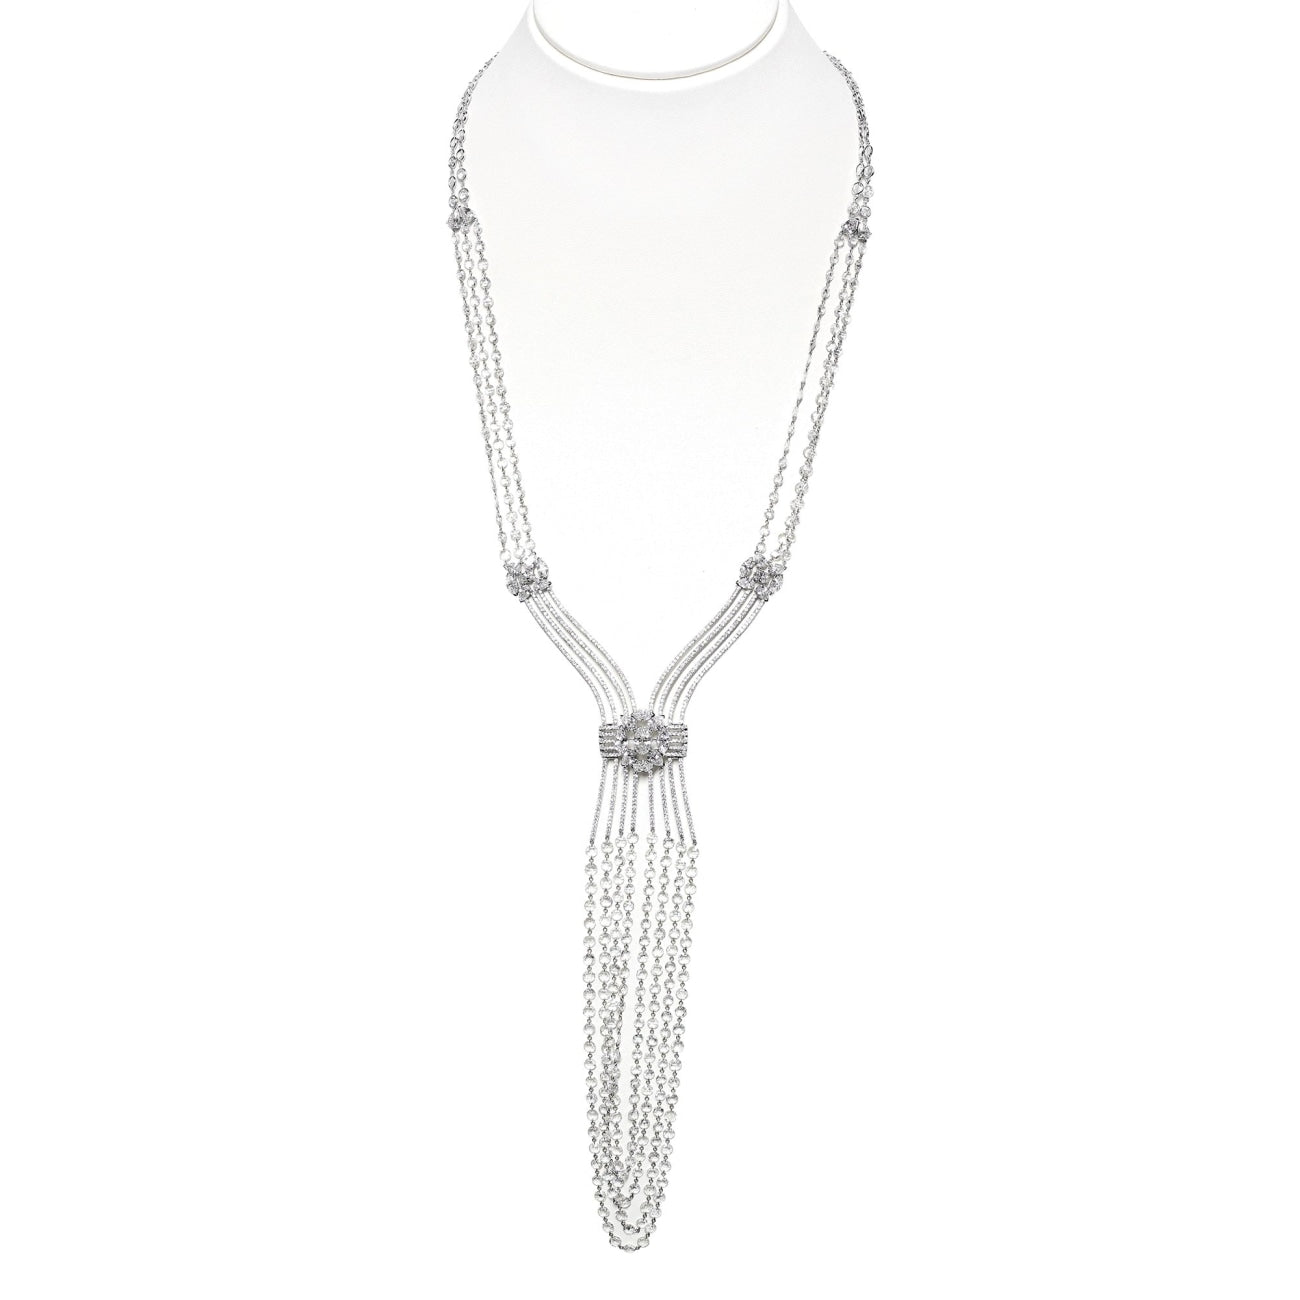 Briollete diamond chandelier necklace